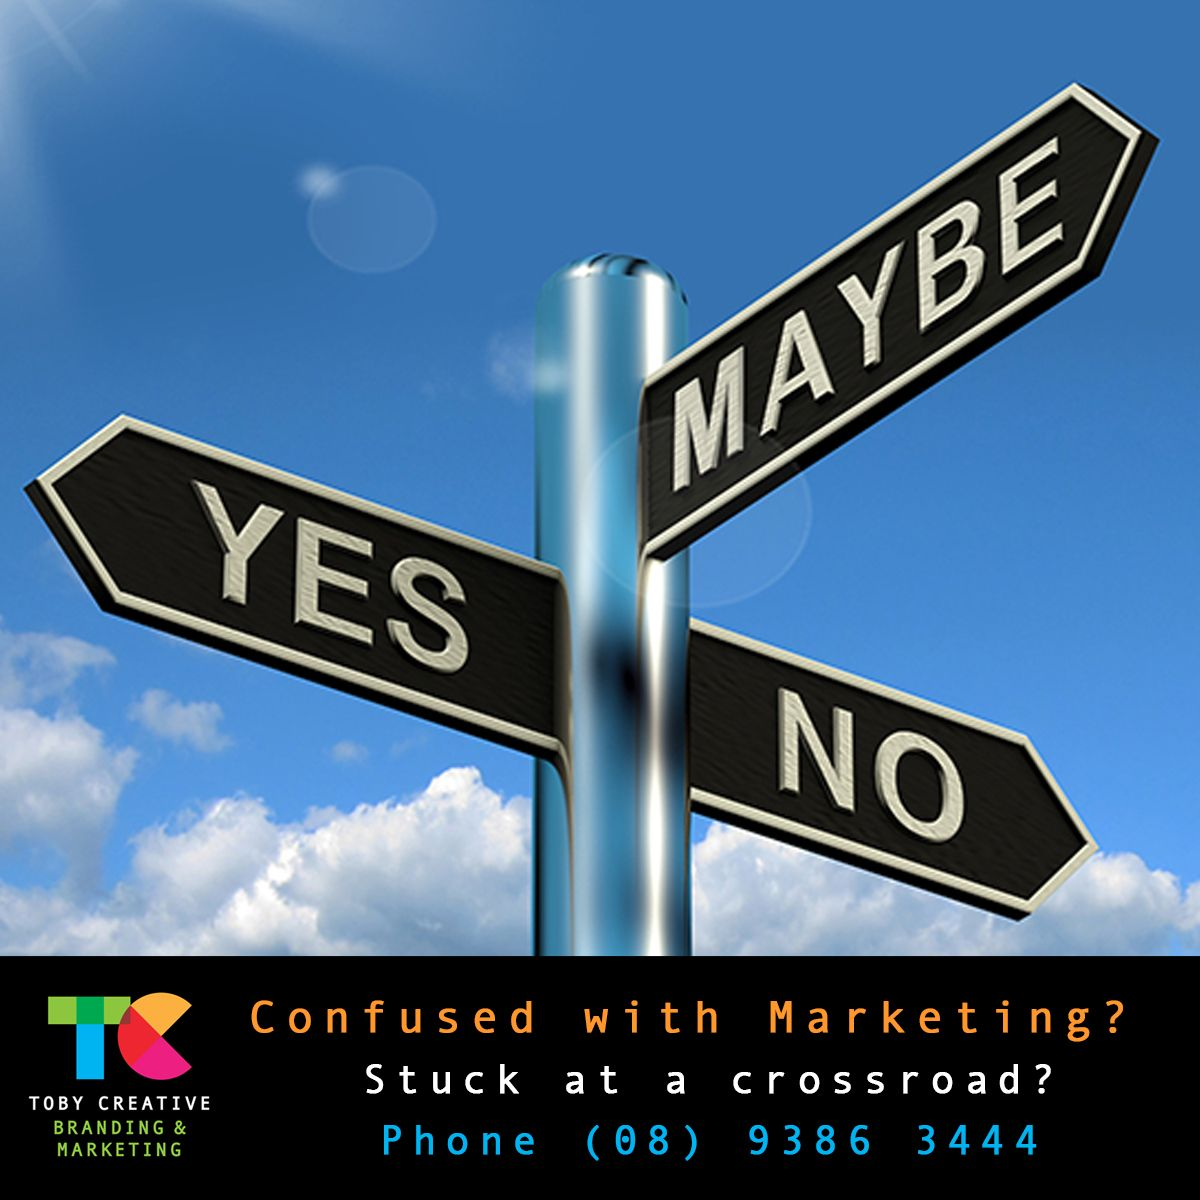 Confused with Marketing? Are you stuck at a crossroads and need some marketing assistance? Phone Toby Creative - Branding & Marketing Perth on (08) 9386 3444, email info@tobycreative.com.au or visit https://tobycreative.com.au/ #tobycreative #branding #marketing #perth #strategy #implementation #reporting #perthseo